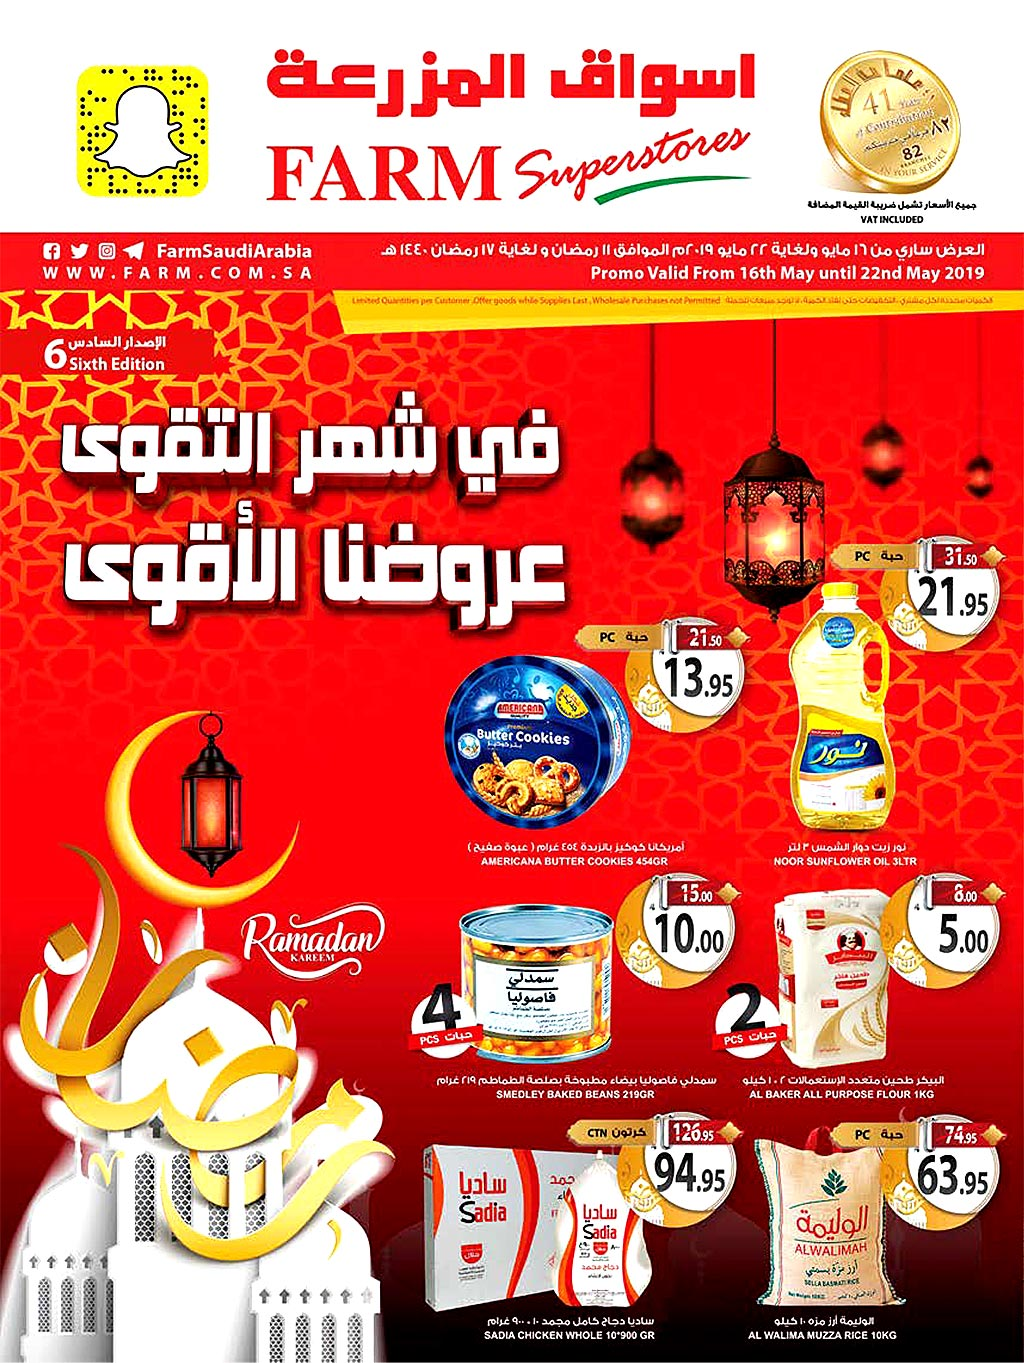 farm offers from 16may to 23may 2019 page number 1 عروض أسواق المزرعة من 16 مايو حتى 23 مايو 2019 صفحة رقم 1